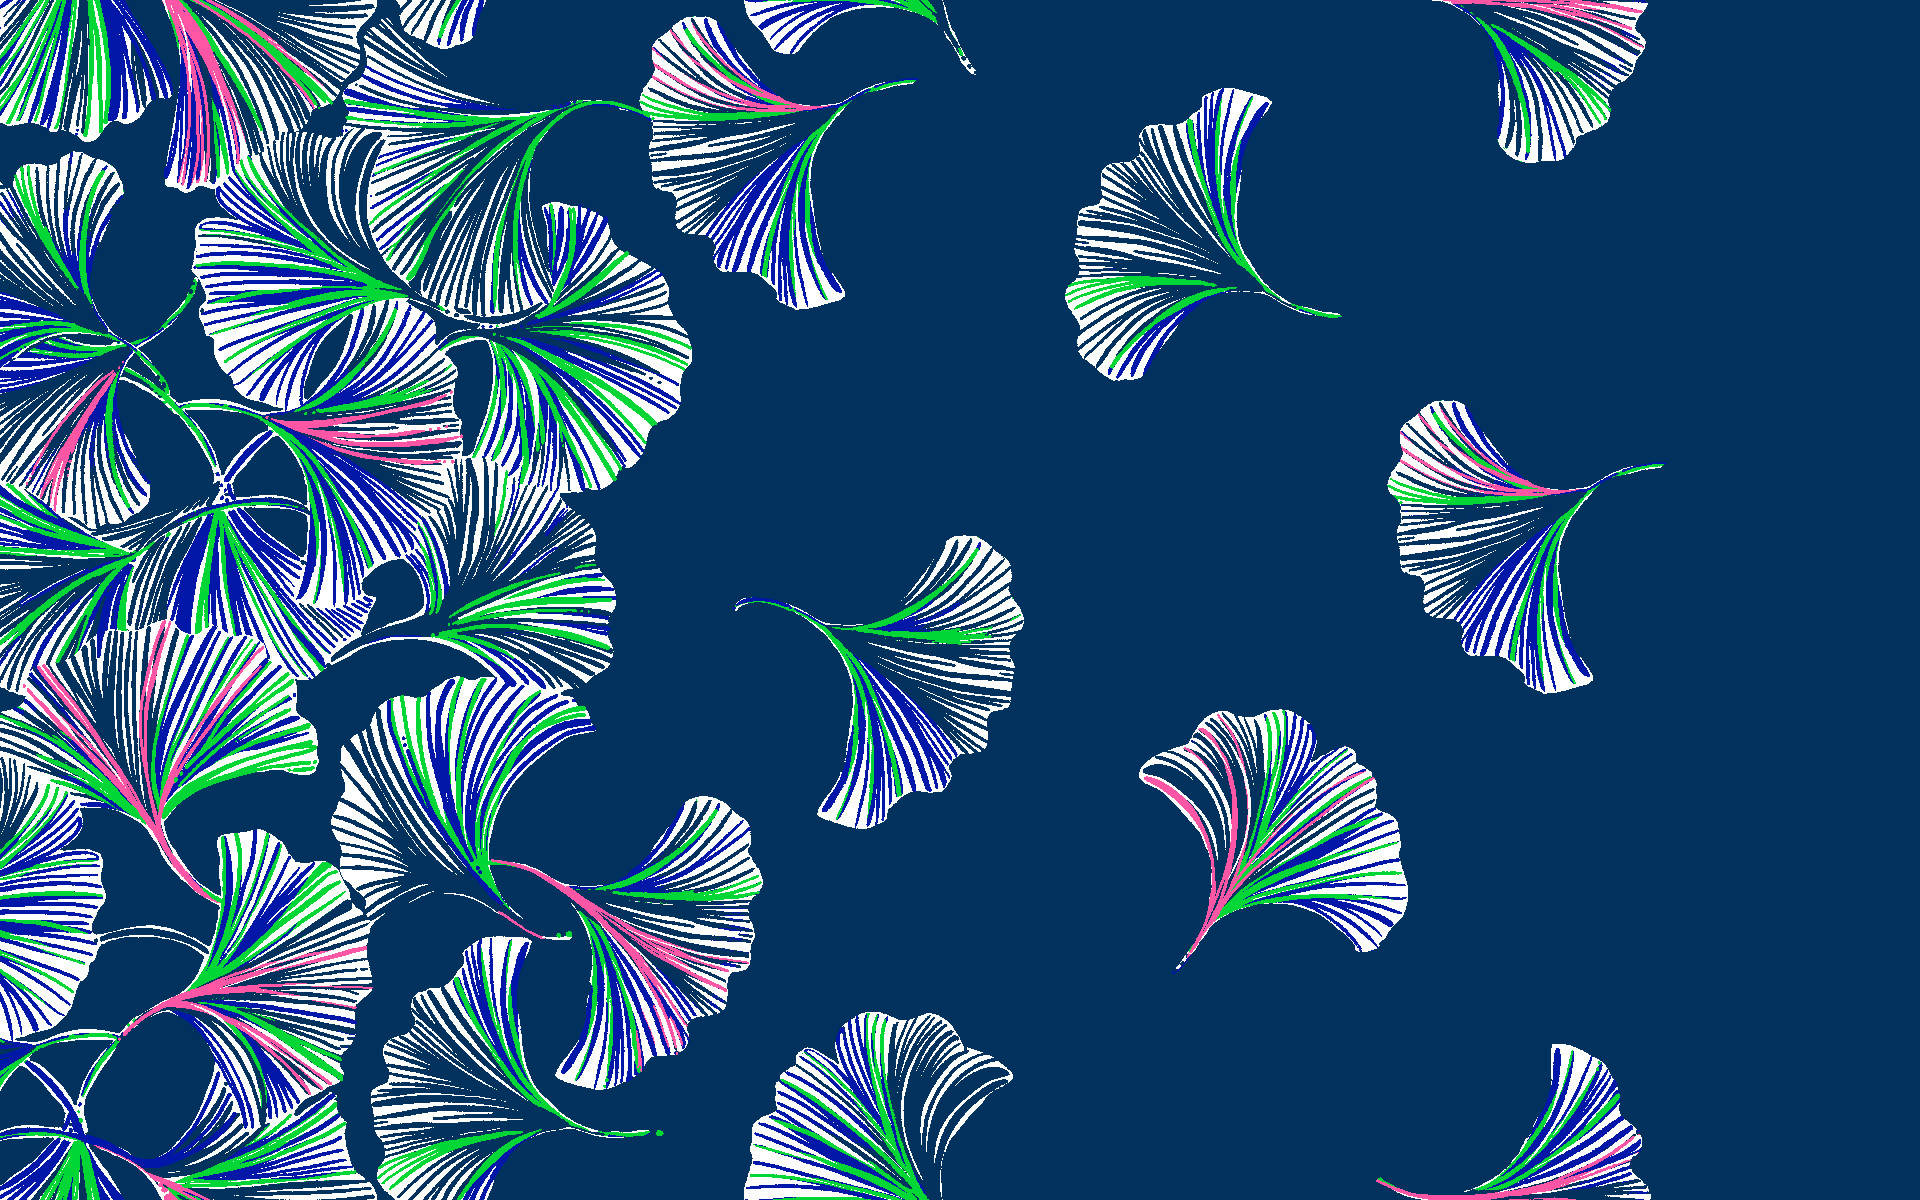 Fall Lilly Pulitzer Wallpaper Monogram Lilly Pulitzer Desktop Wallpaper 38 Images